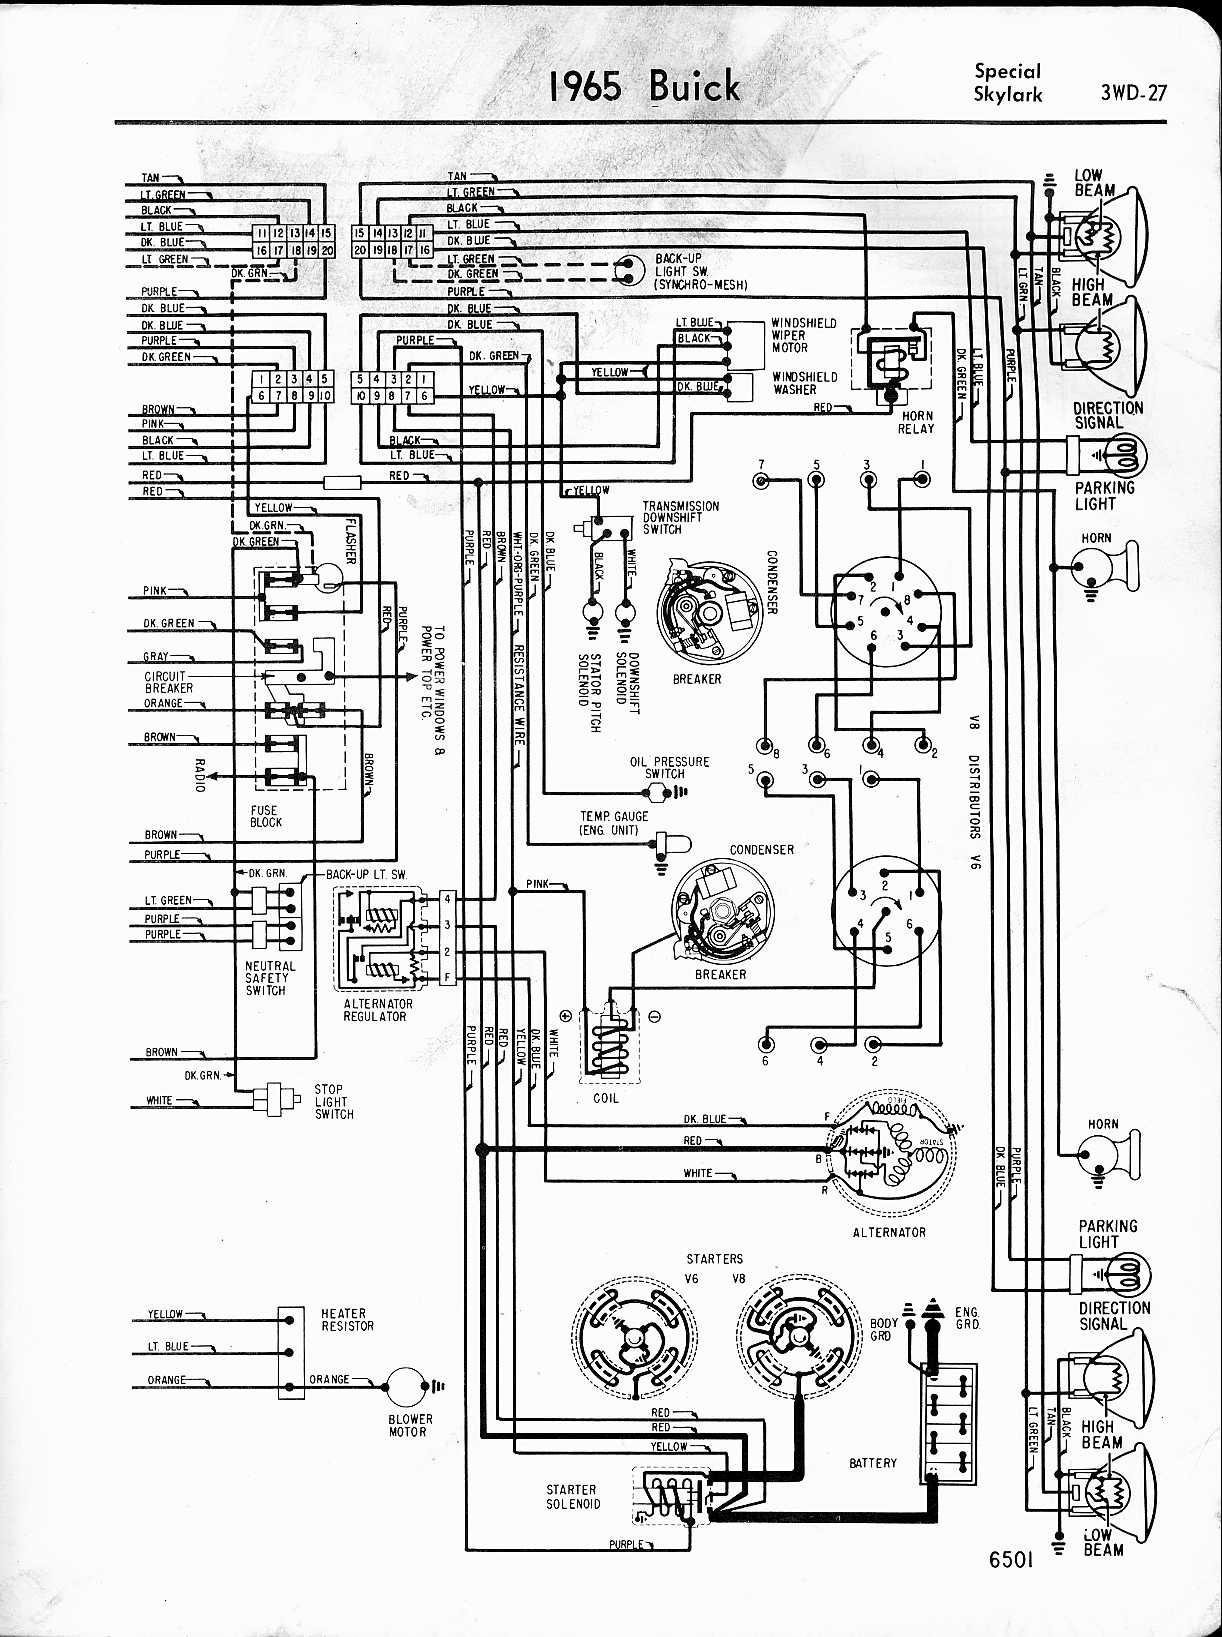 Tremendous Wiring Diagram Moreover 1937 Buick Wiring Diagram Also 1969 Cadillac Wiring Cloud Licukshollocom